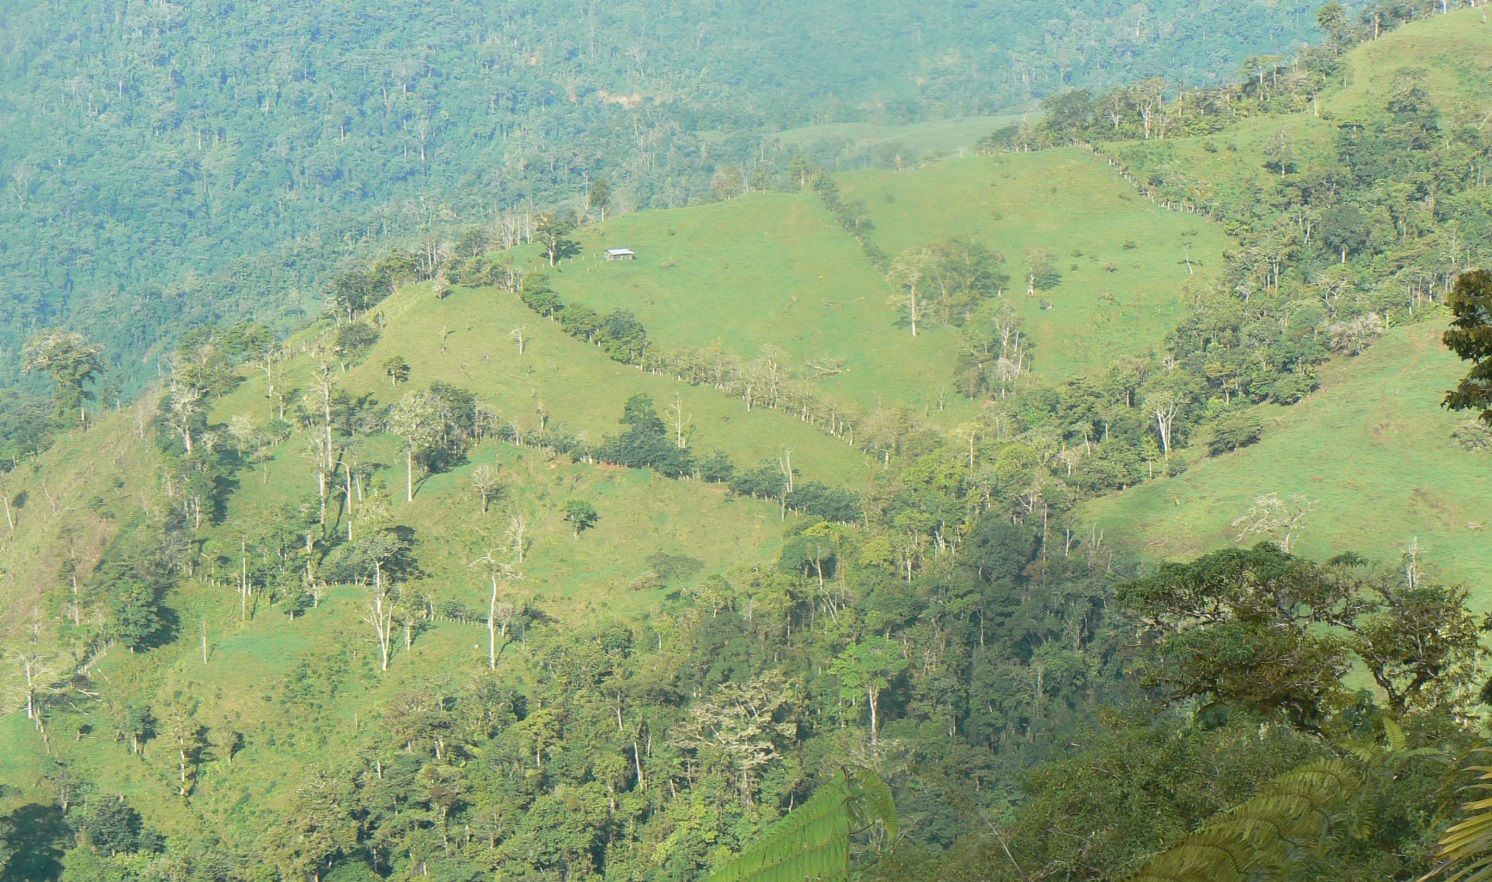 Tree islands for tropical forest restoration: the outlook is rosy after 10 years